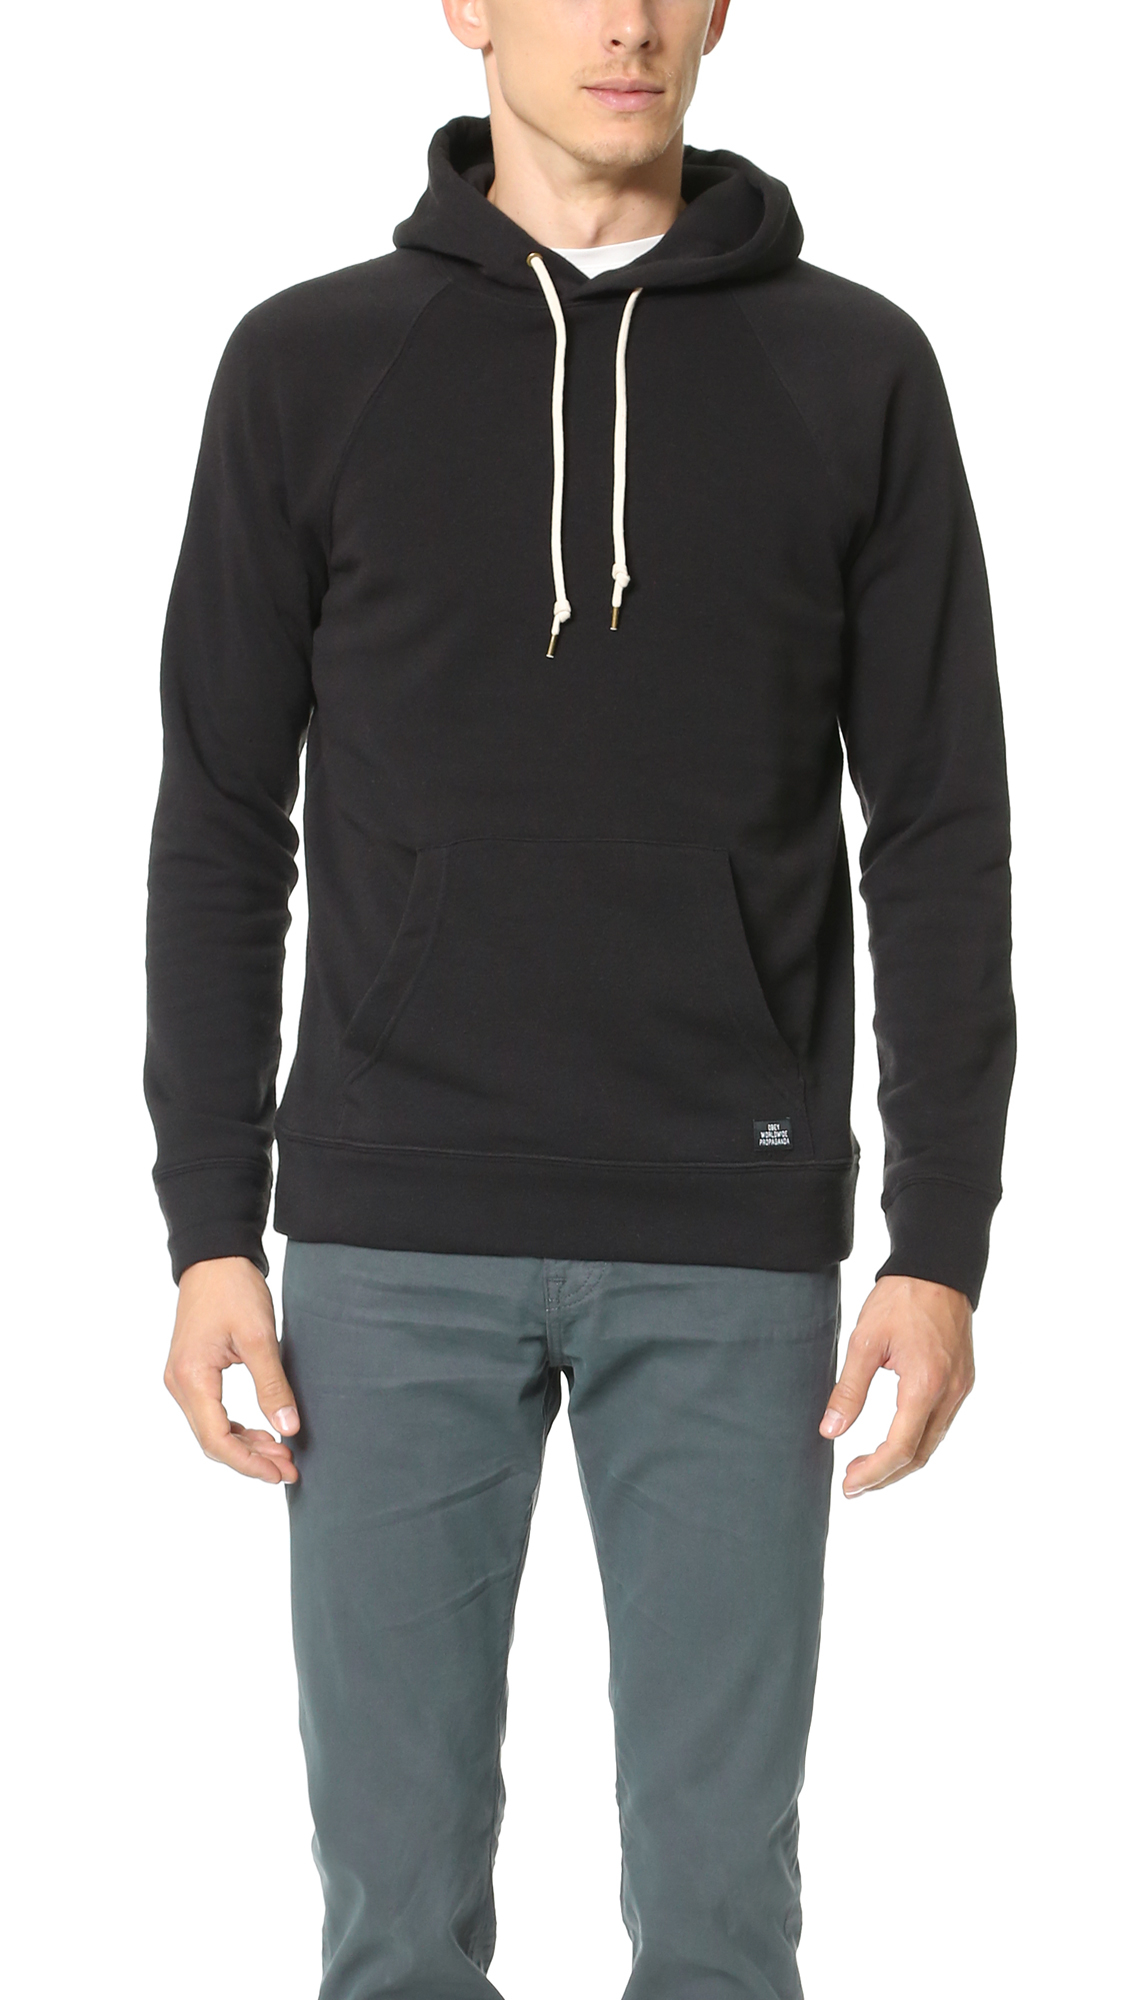 obey lofty creature comforts pullover hoodie in black for men. Black Bedroom Furniture Sets. Home Design Ideas